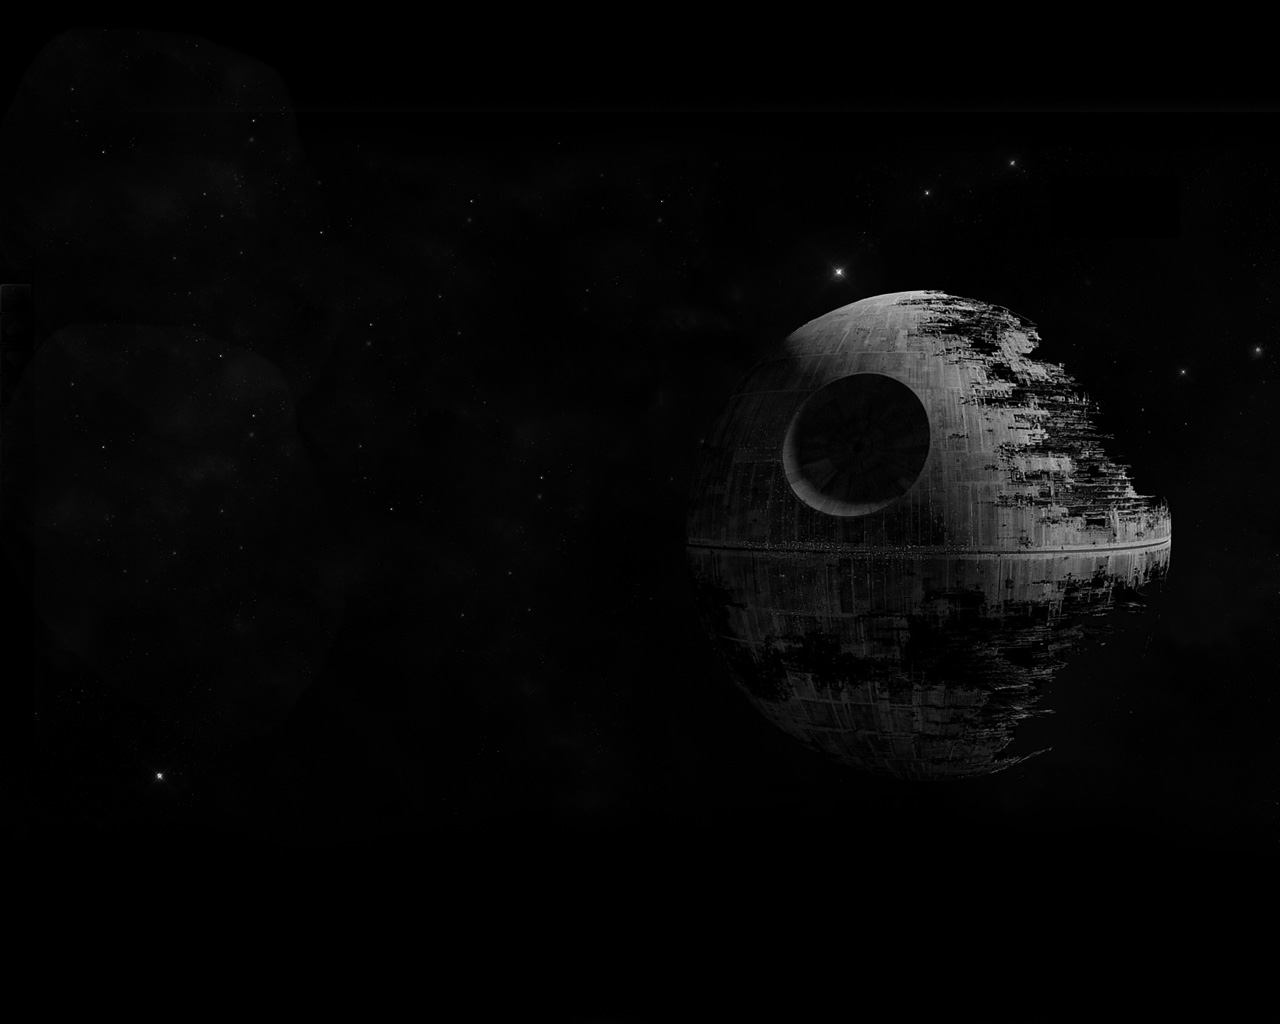 collection of cool desktop wallpaper pictures for Star Wars fans 269